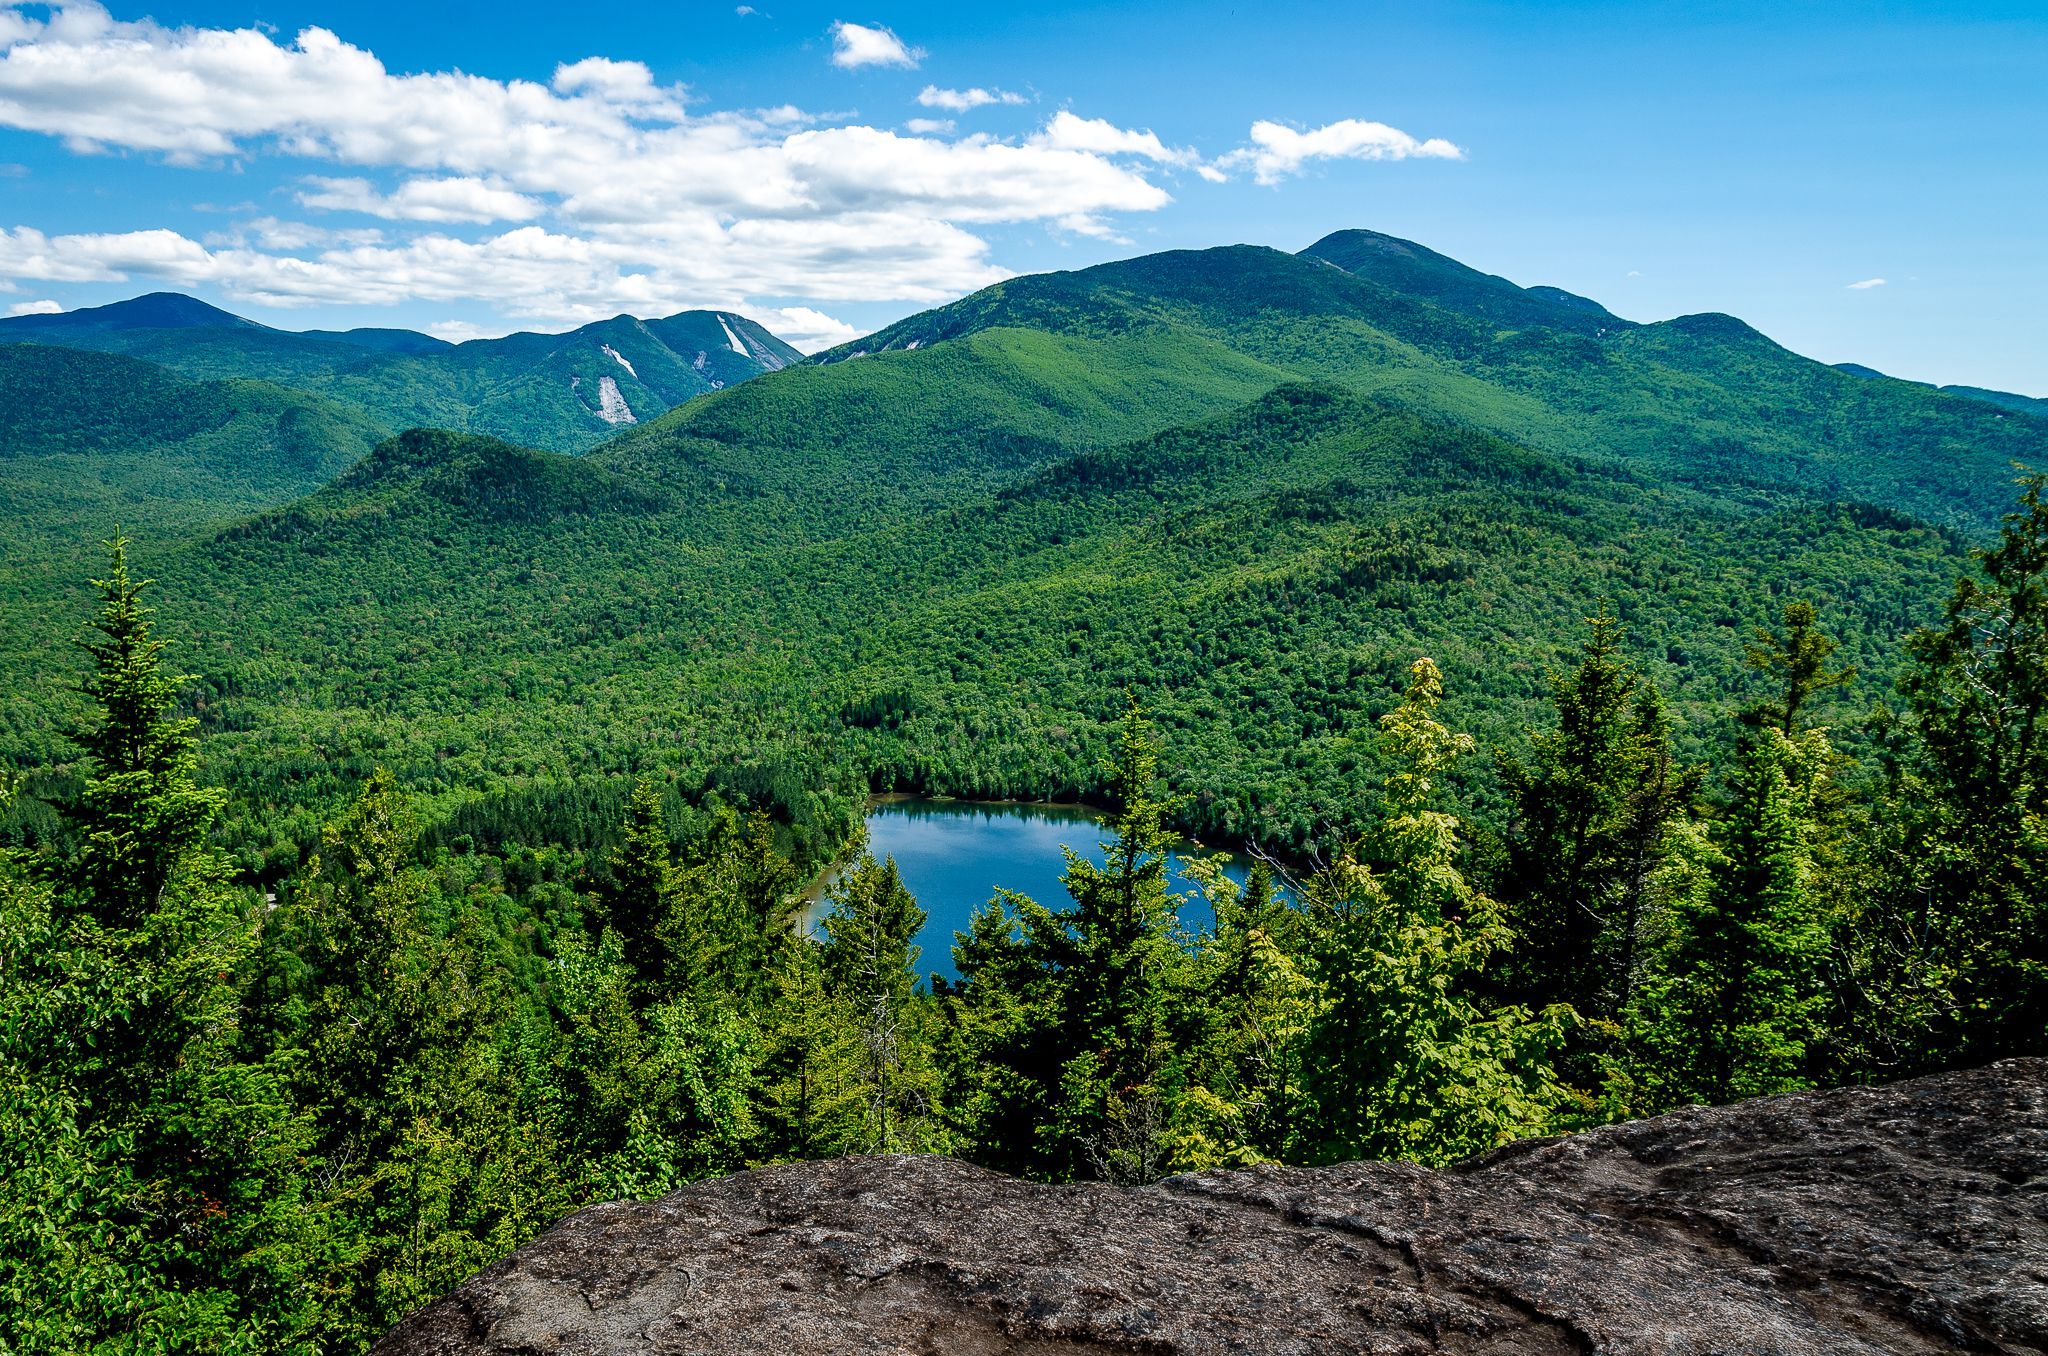 Where to Go Camping in the Adirondacks